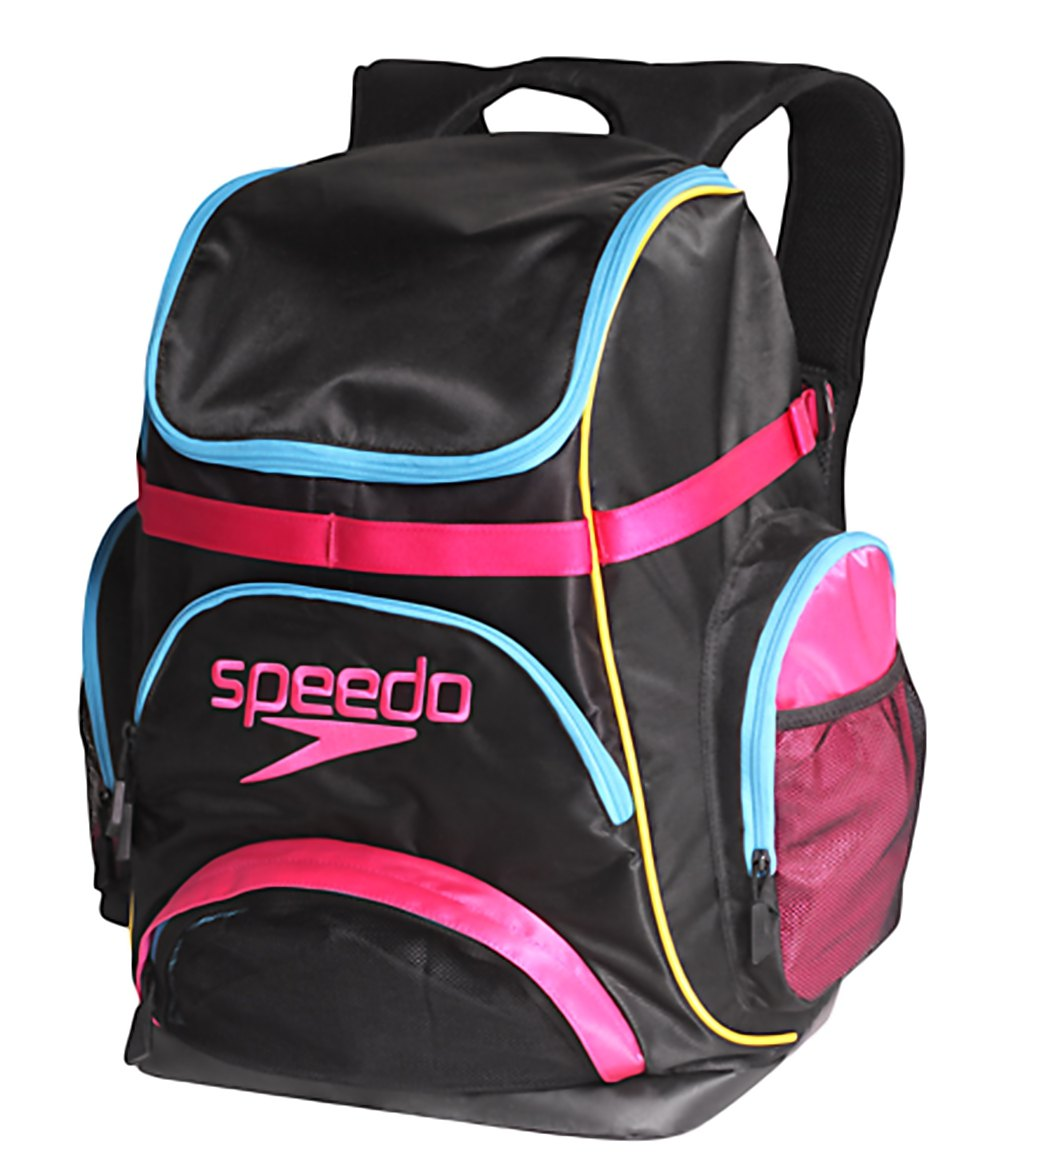 a2f4ba8bce4e Speedo SwimOutlet.com Exclusive Speedo Pro Backpack at SwimOutlet.com -  Free Shipping